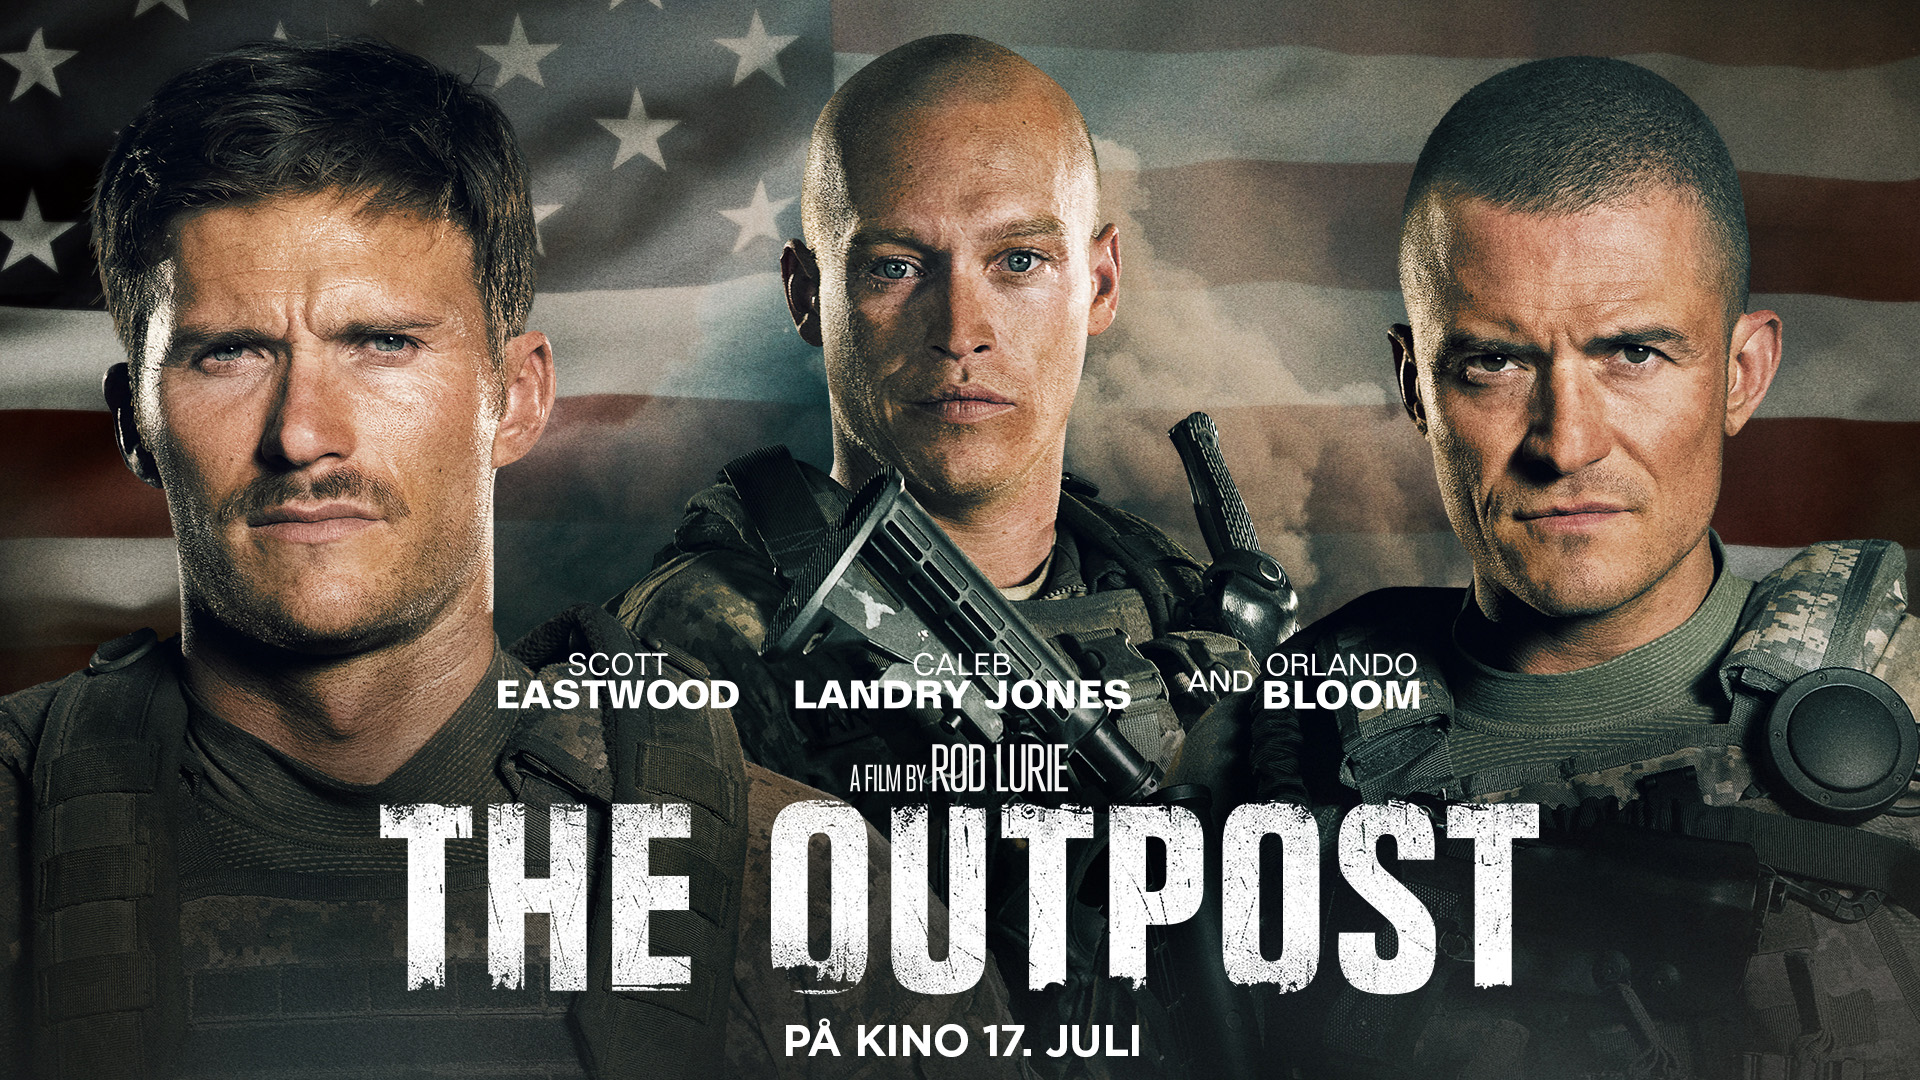 THE OUTPOST (2020) | Movie Review And Entertainment